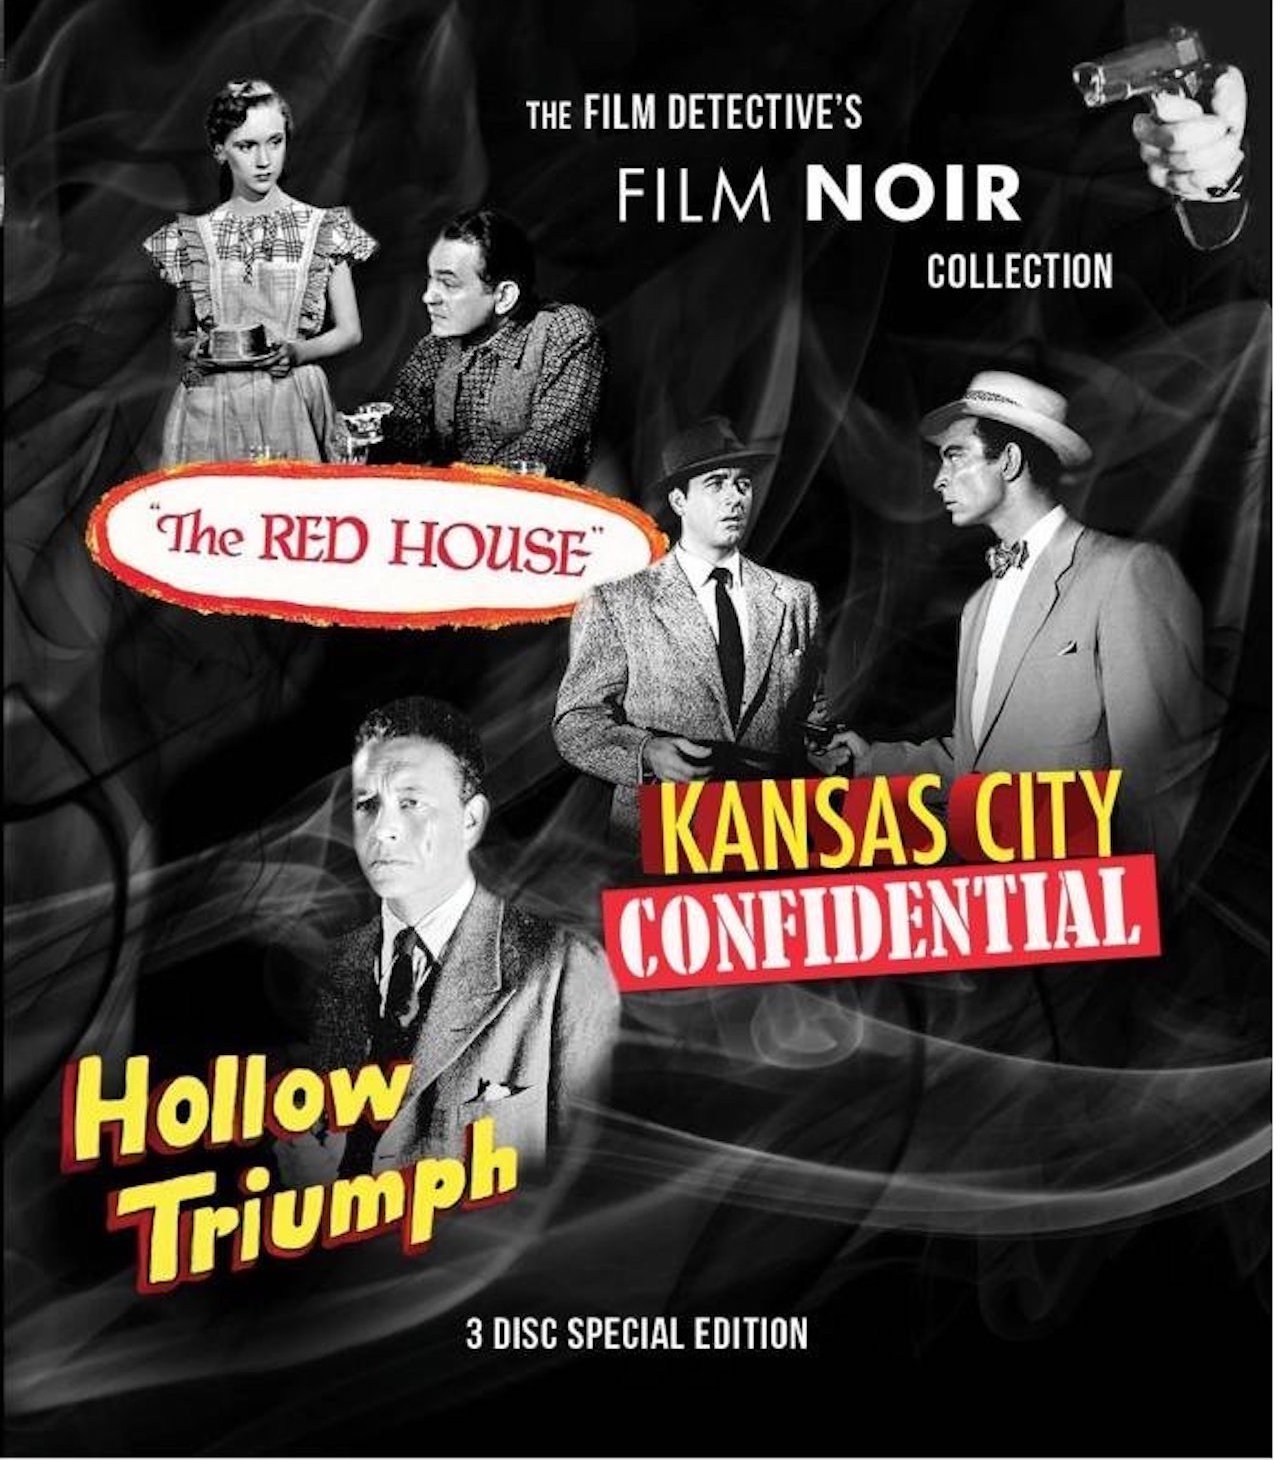 The Film Detective's Film Noir Collection